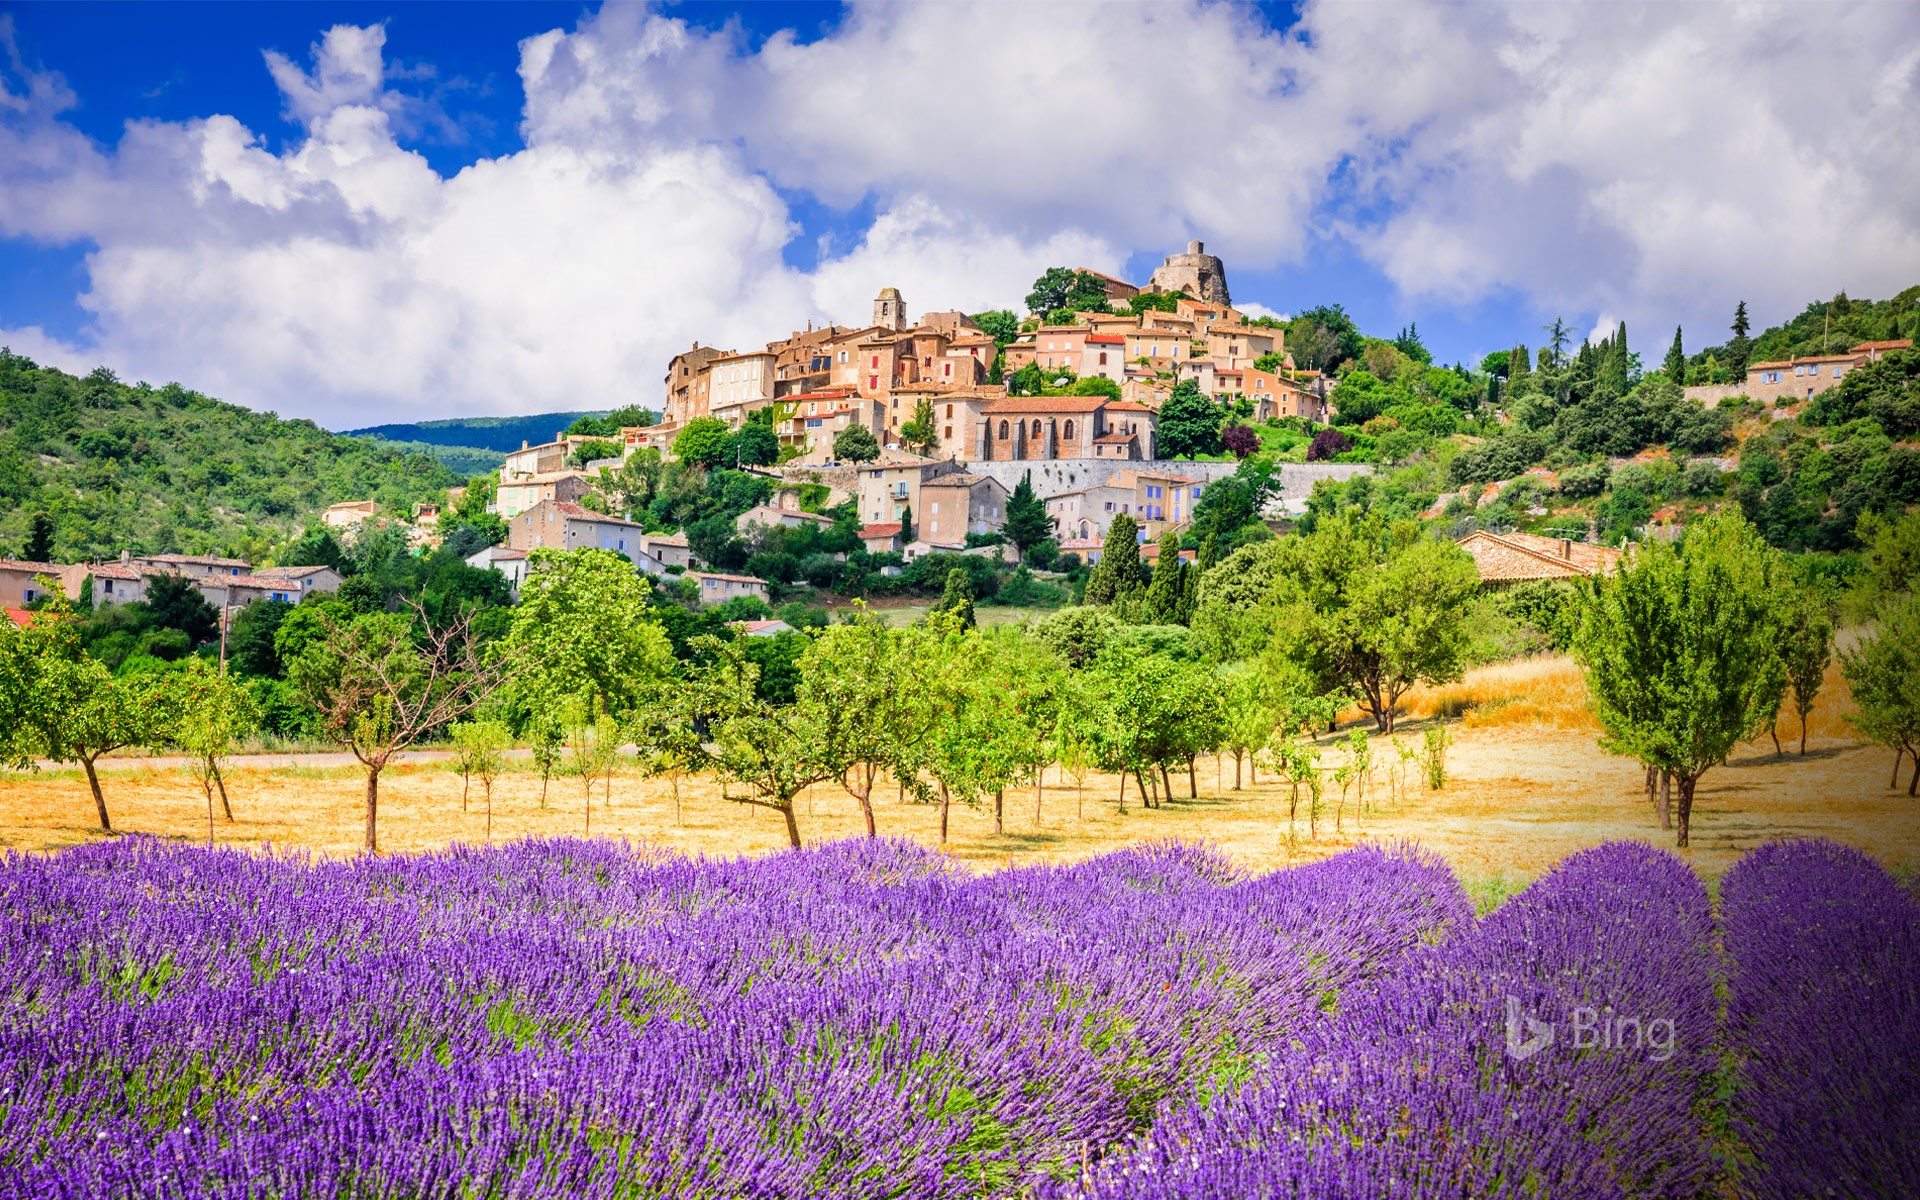 Village of Simiane-la-Rotonde and lavender field, in Provence